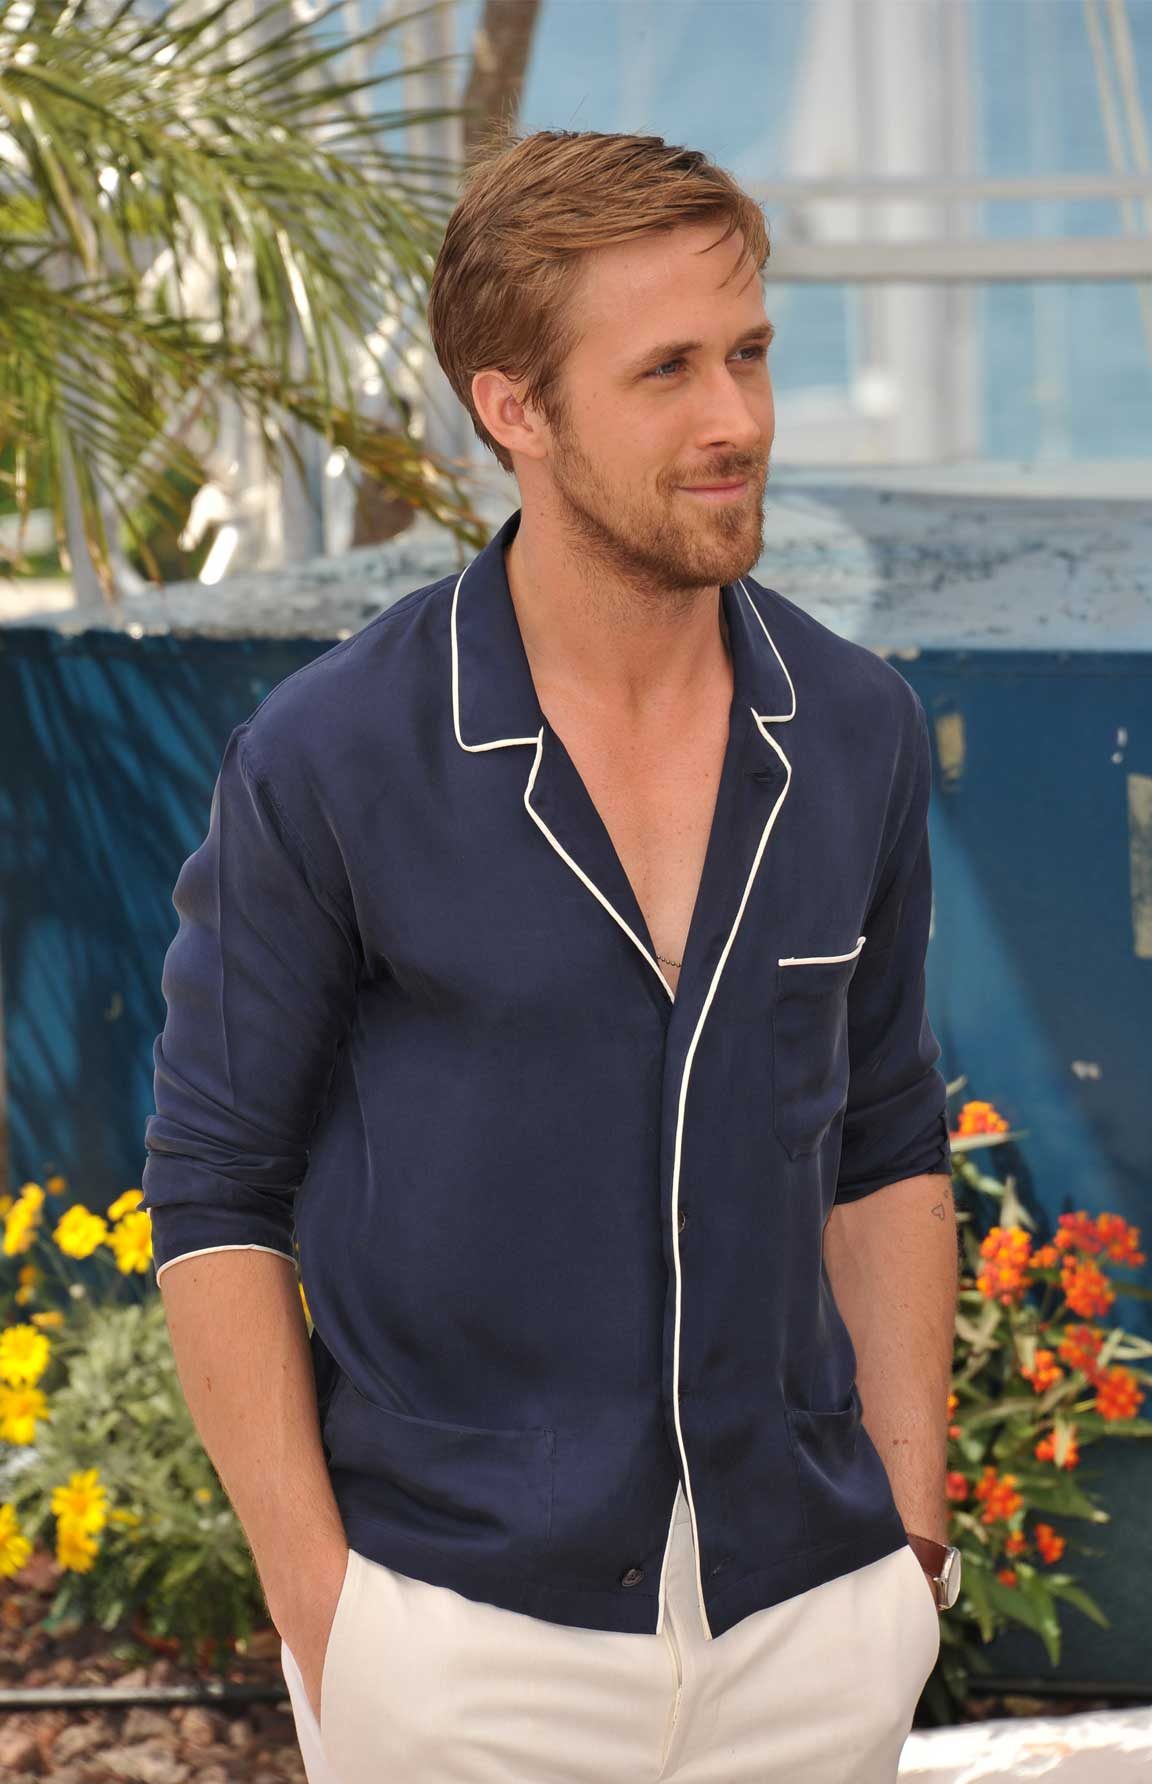 Ryan Gosling is the king of cool, even in the summer